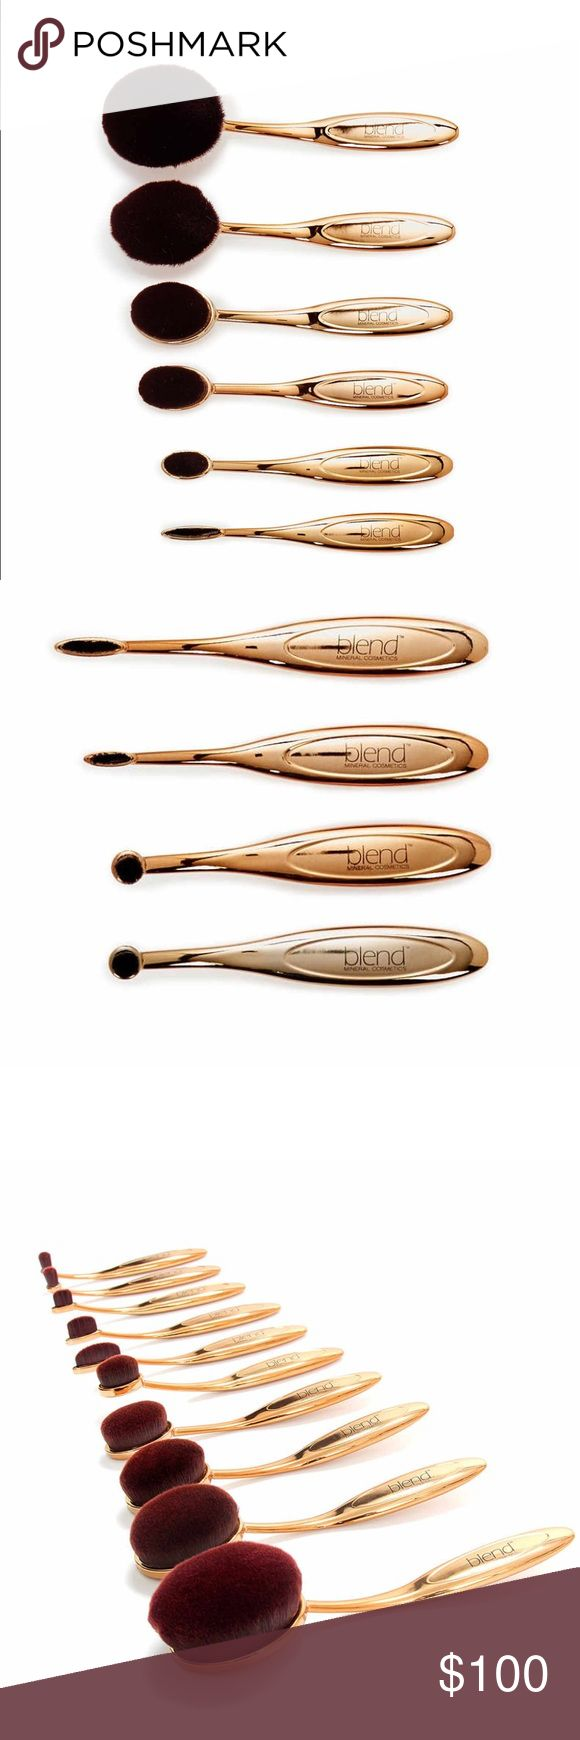 Gold Wow Artist 10-Piece Oval Brush Set Material consists of a synthetic fiber brush. These brushes are compatible with any type of foundation,bb cream, powder, blush, etc. Super densely packed ultra fine fiber delivers streak free, flawless coverage. Its not available for purchase, but I want to know how many would be, because I don't know if I should keep them (and possibly use them) or sell them to someone who will use them more often. Please like and/or comment to let me know if I should…